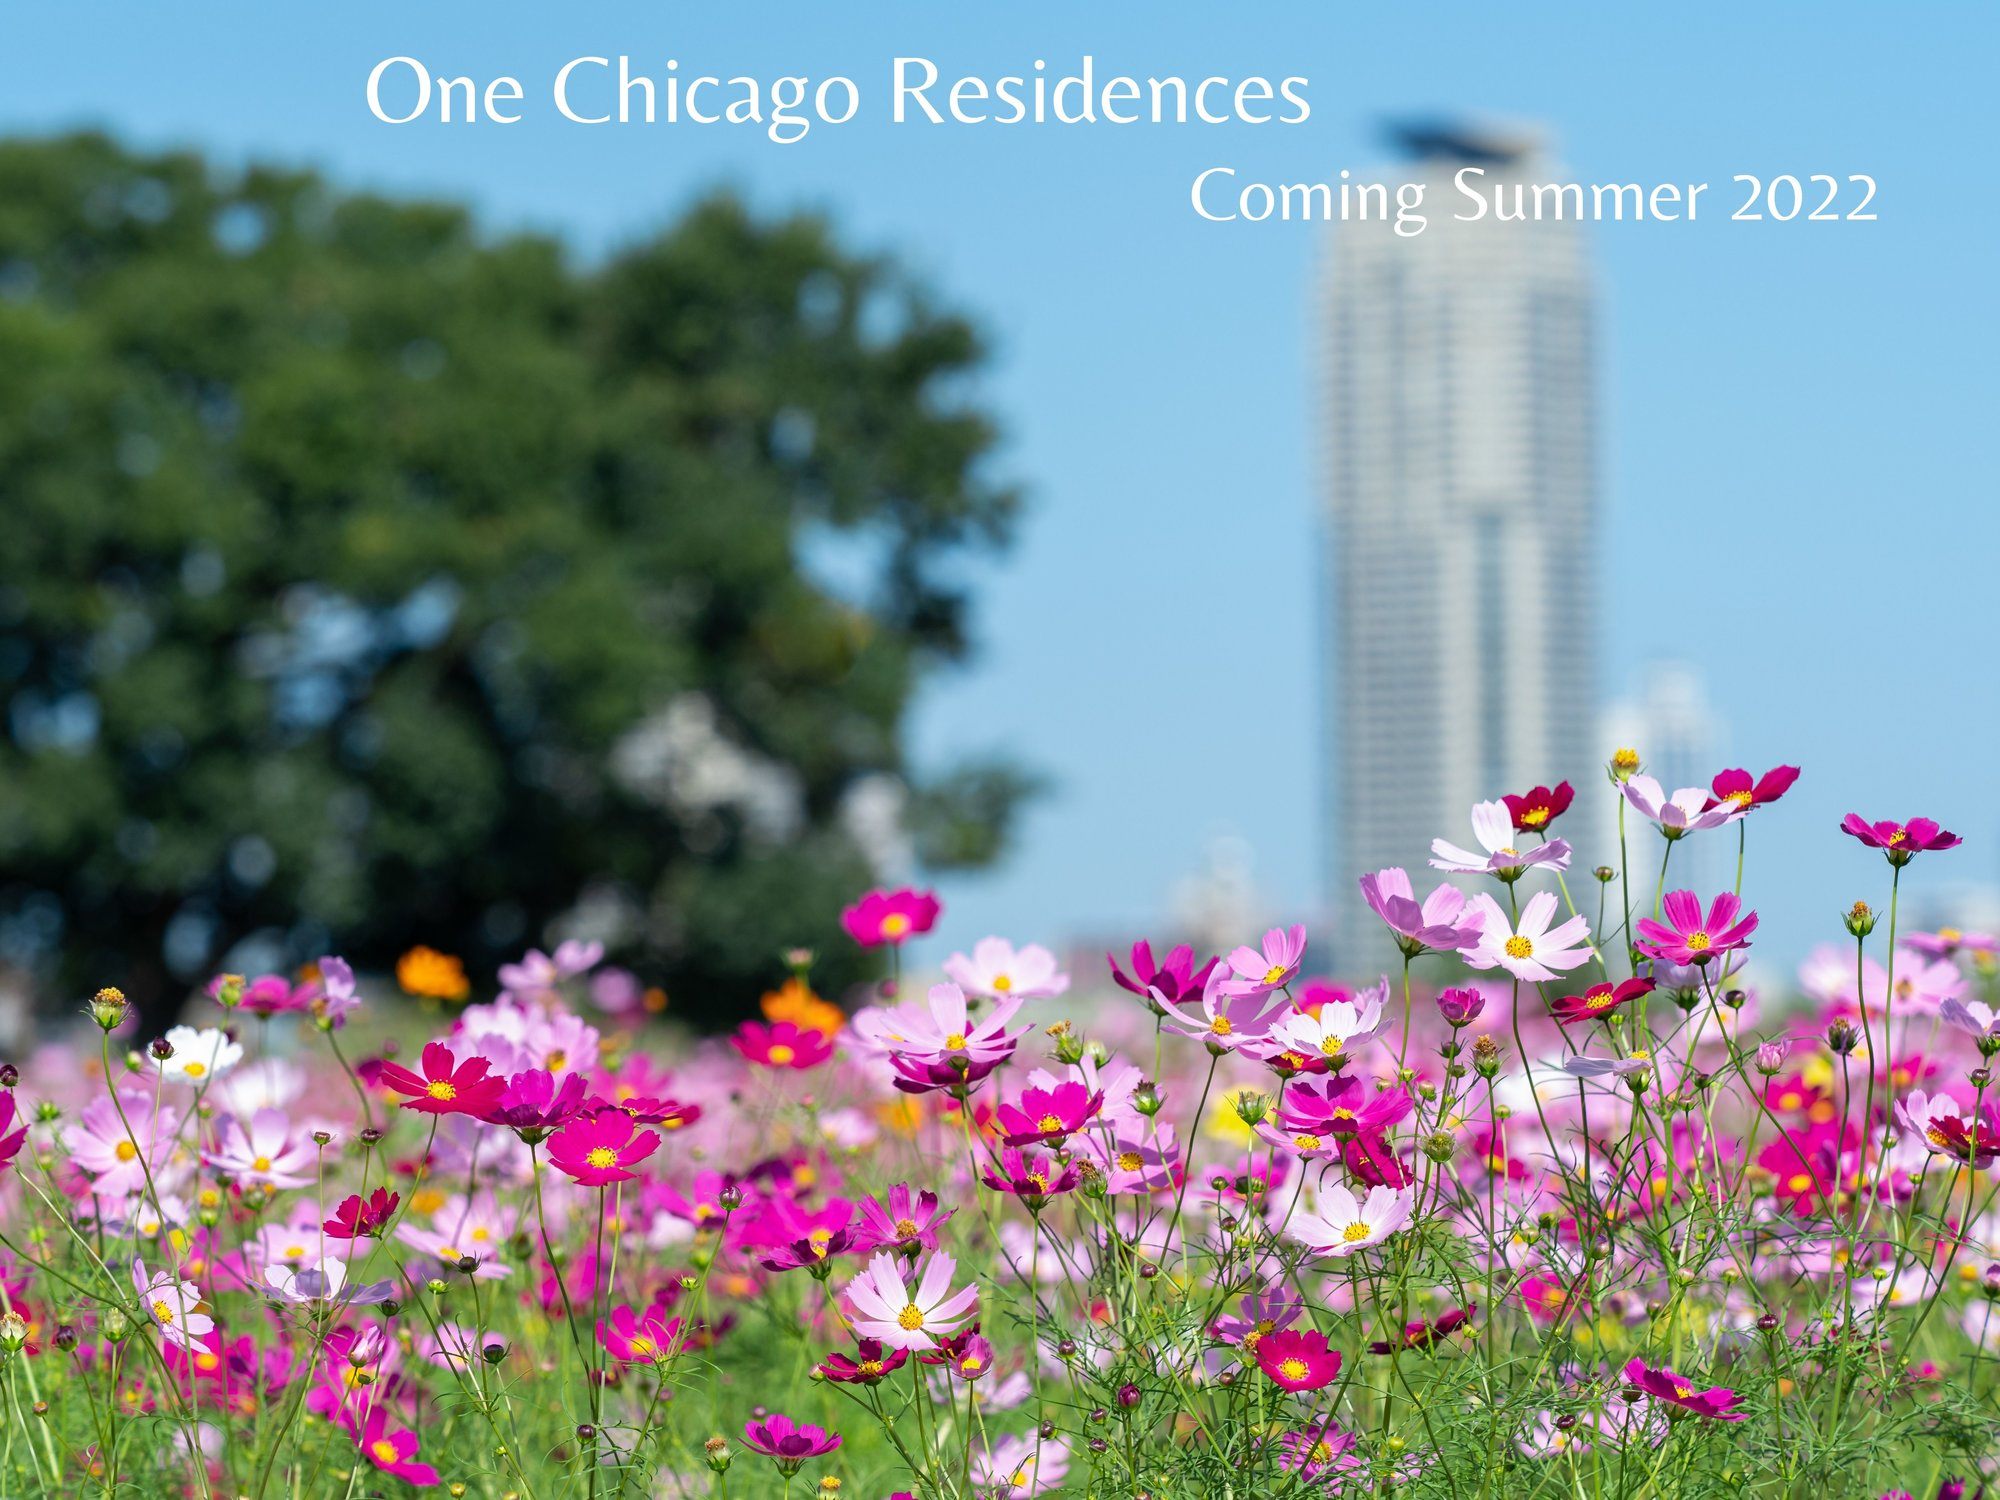 OneChicagoResidences